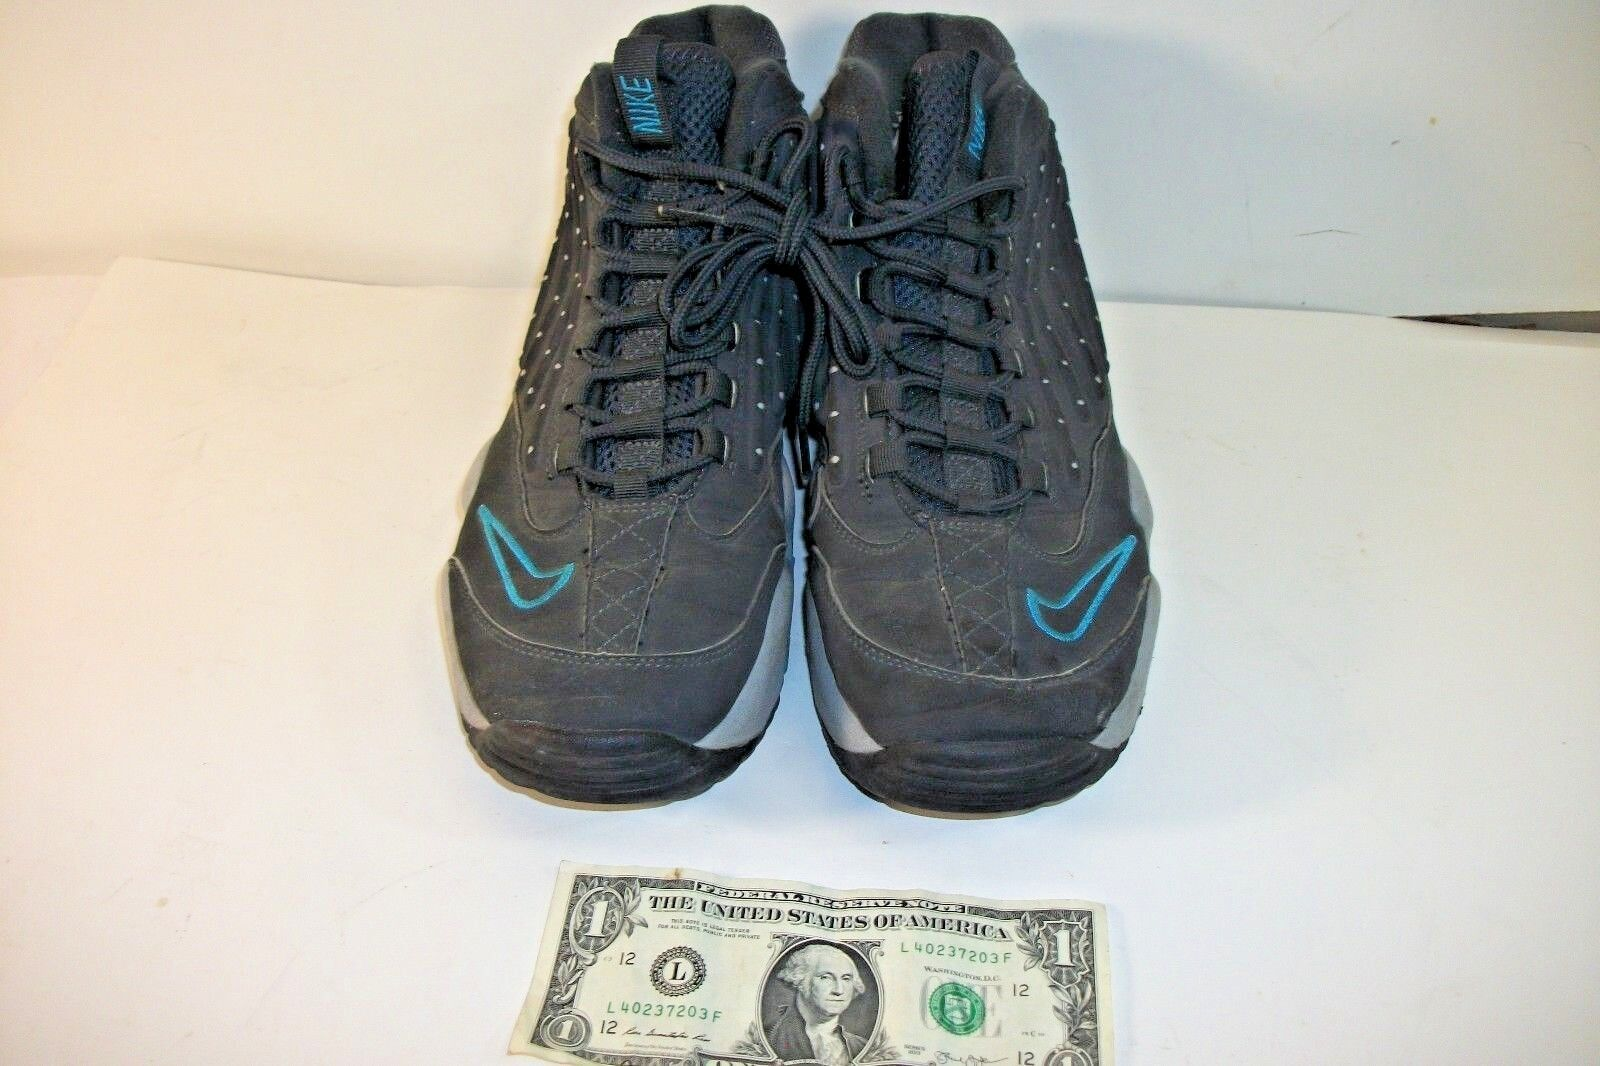 Nike Gray & Teal Sneakers / Basketball Shoes Size 11